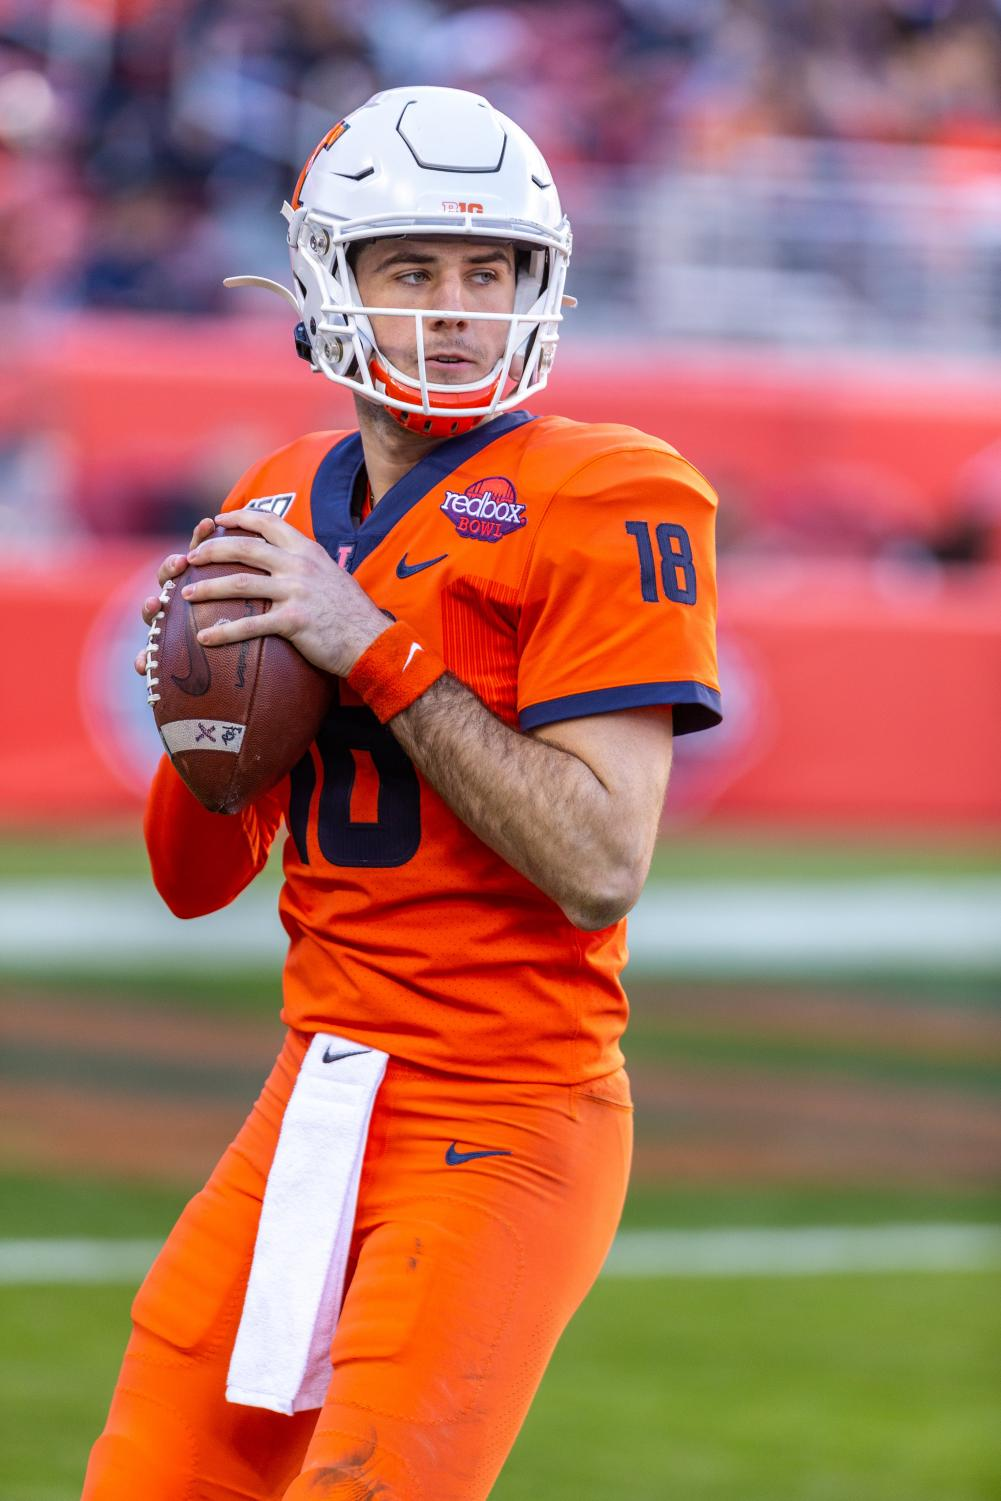 Quarterback Brandon Peters prepares to throw the ball during the Redbox Bowl in Santa Clara, Calif. Monday. Peters was an important piece in Illinois' offense during the bowl game against California on Monday.